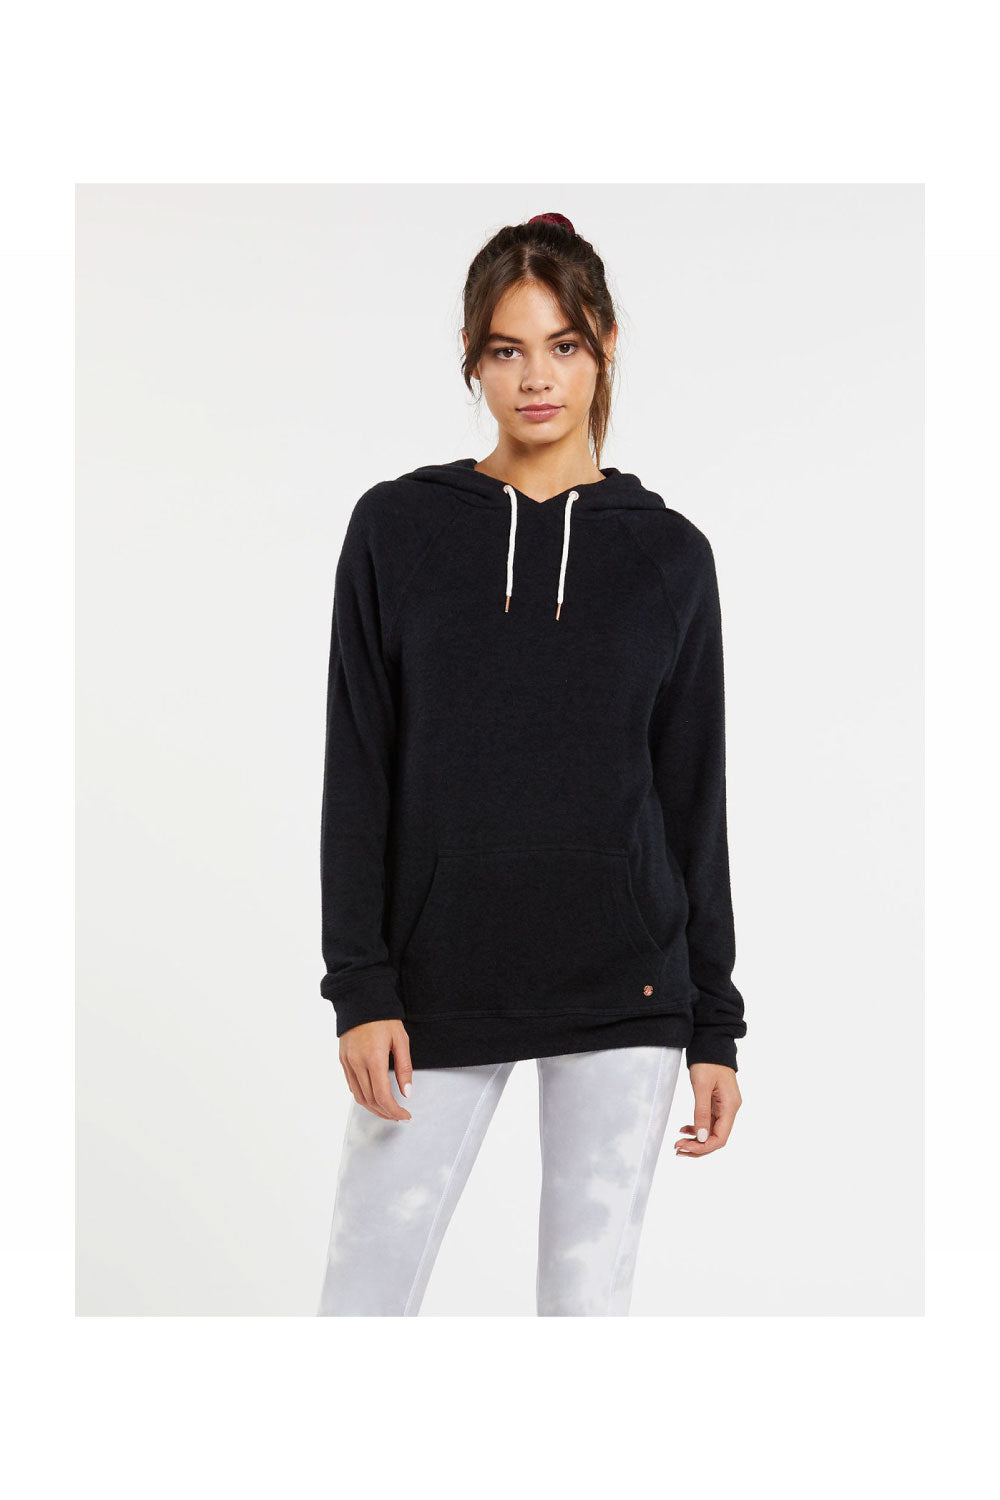 Volcom LIL (Lived In Longue) Women's Hoodie Jumper